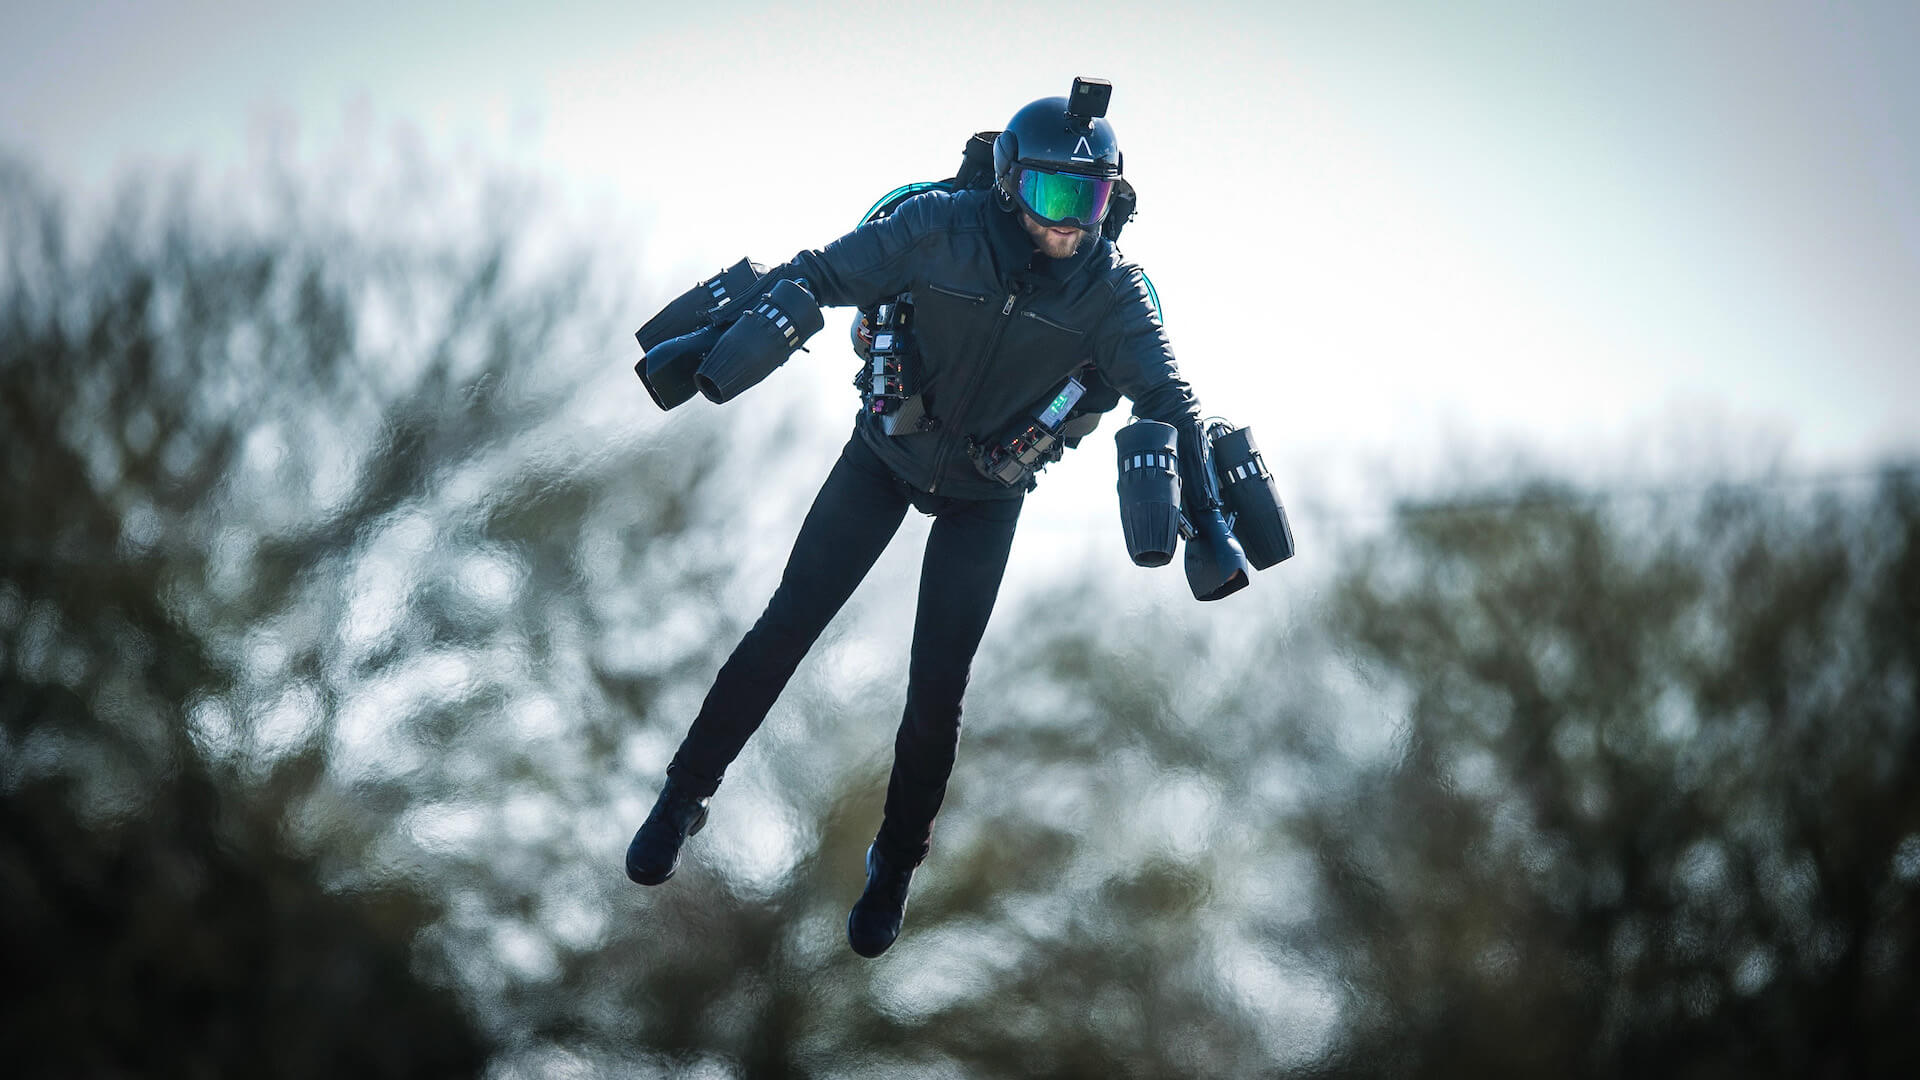 Projects image, Gravity Jet Suit